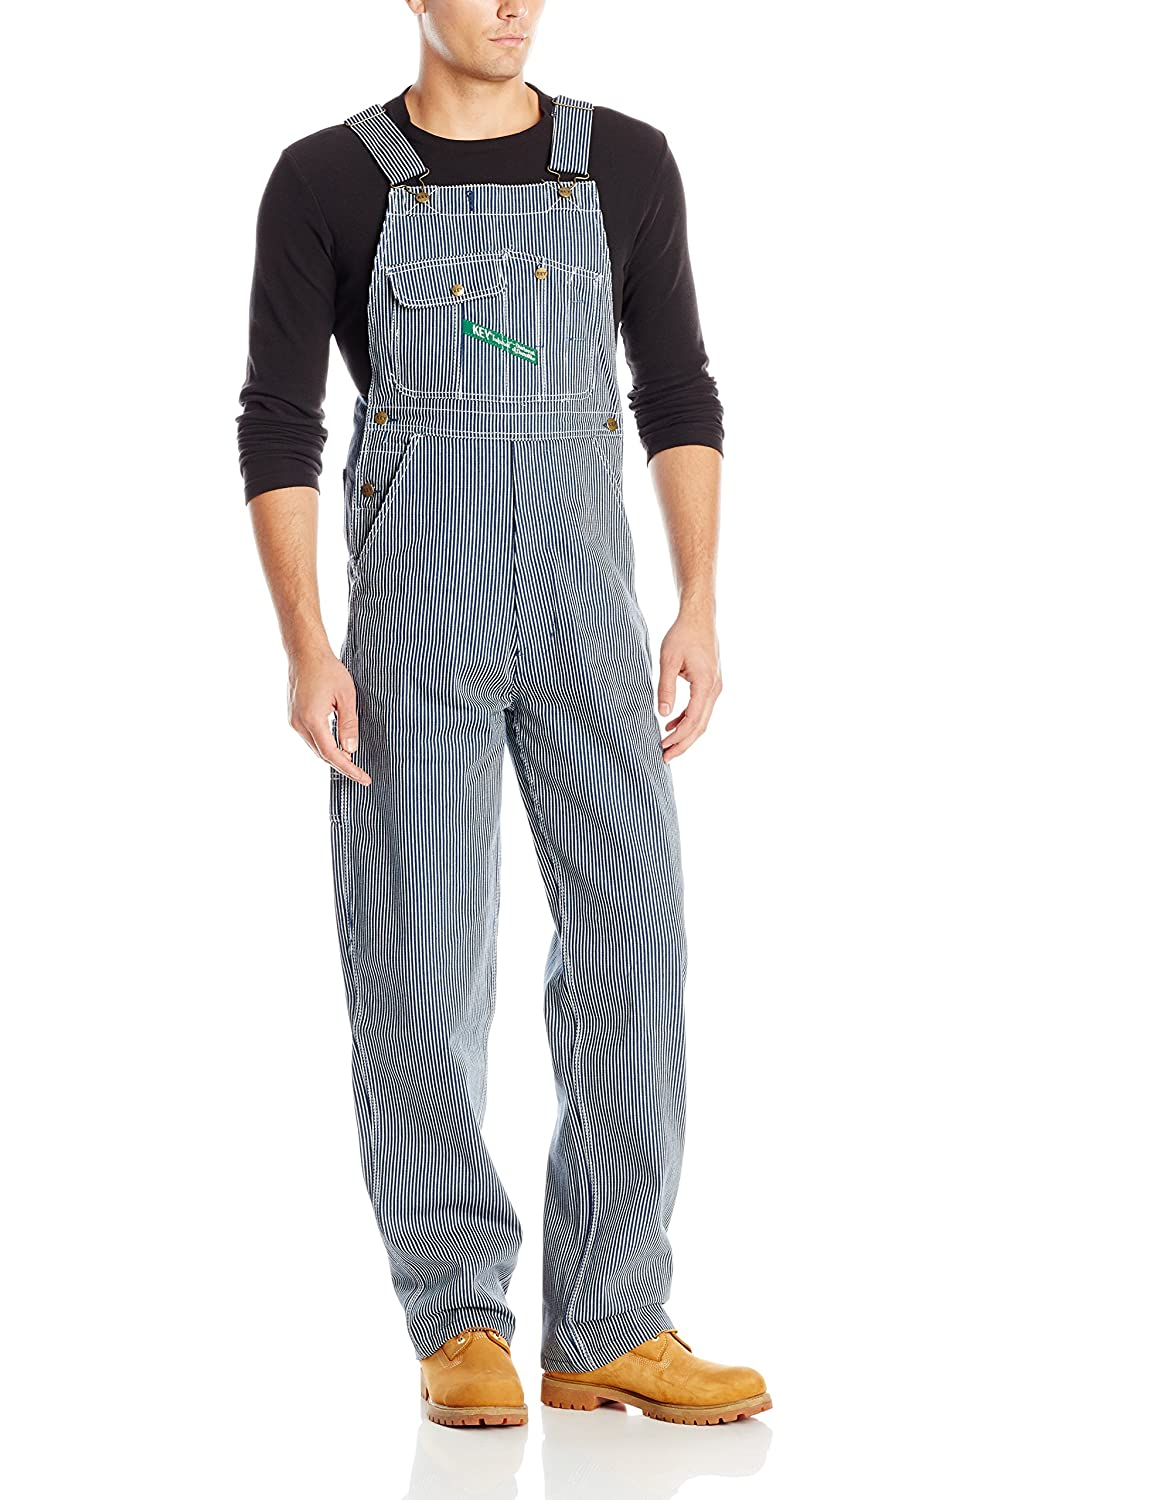 Edwardian Men's Pants Key Apparel Mens Hickory Stipe High Back Bib Overall $54.97 AT vintagedancer.com